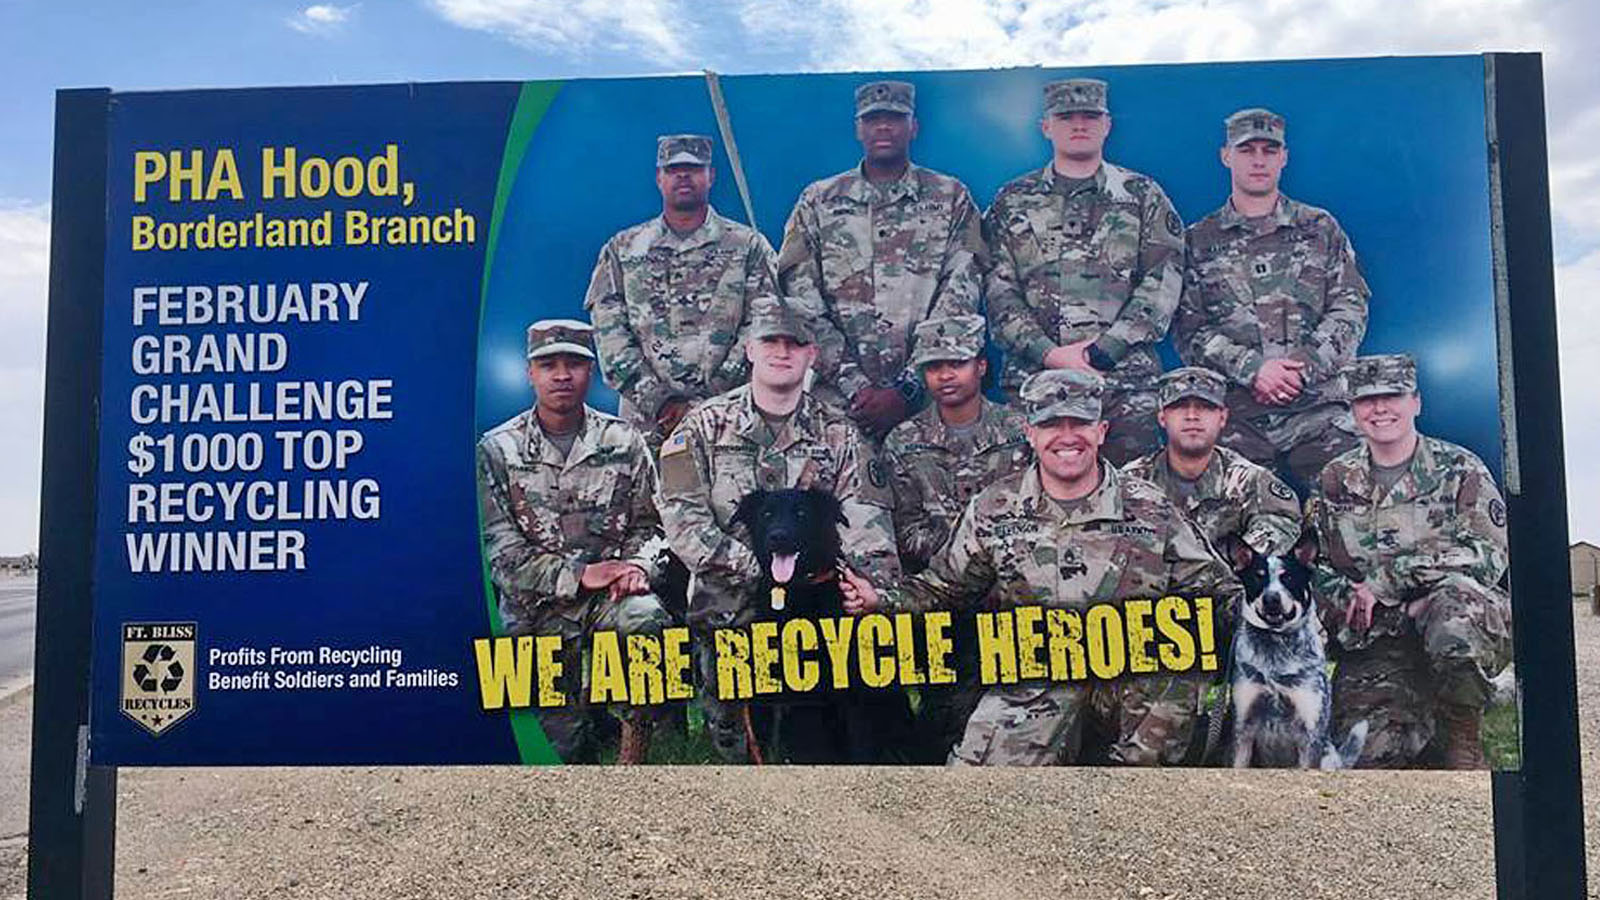 Fort Bliss Recycling Hero Awarded America Recycles Day Award On Veteran's Day; Fort Bliss to Reach Net Zero Waste by 2020